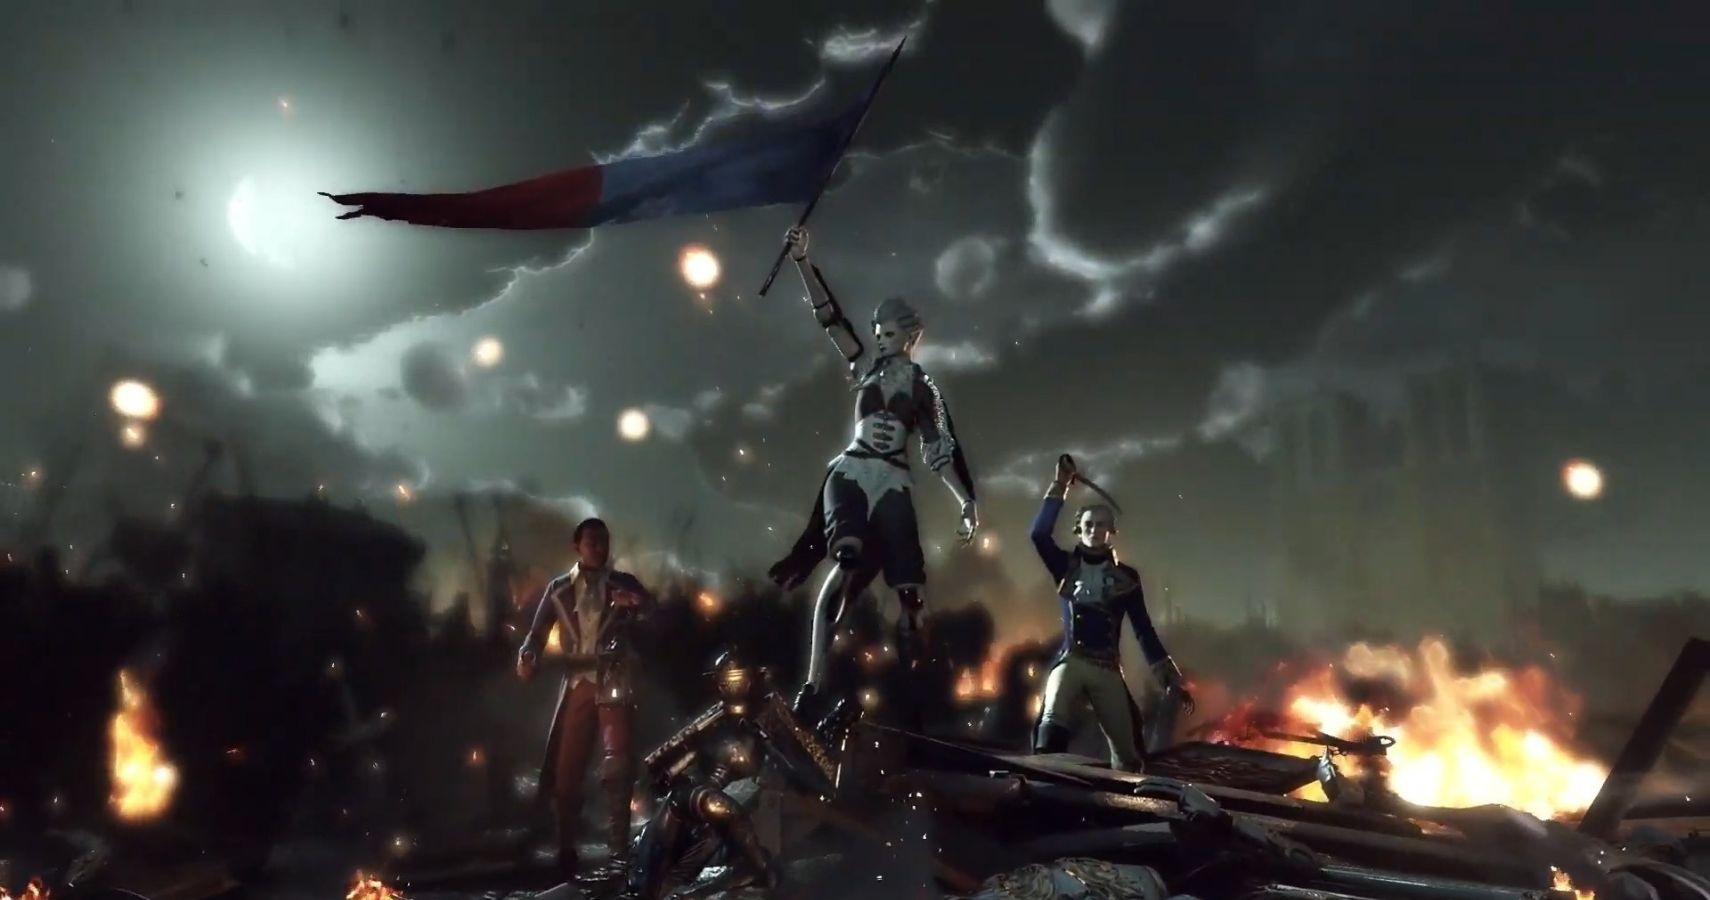 Defend 18th Century Paris Against An Automata Army In Action-RPG Steelrising